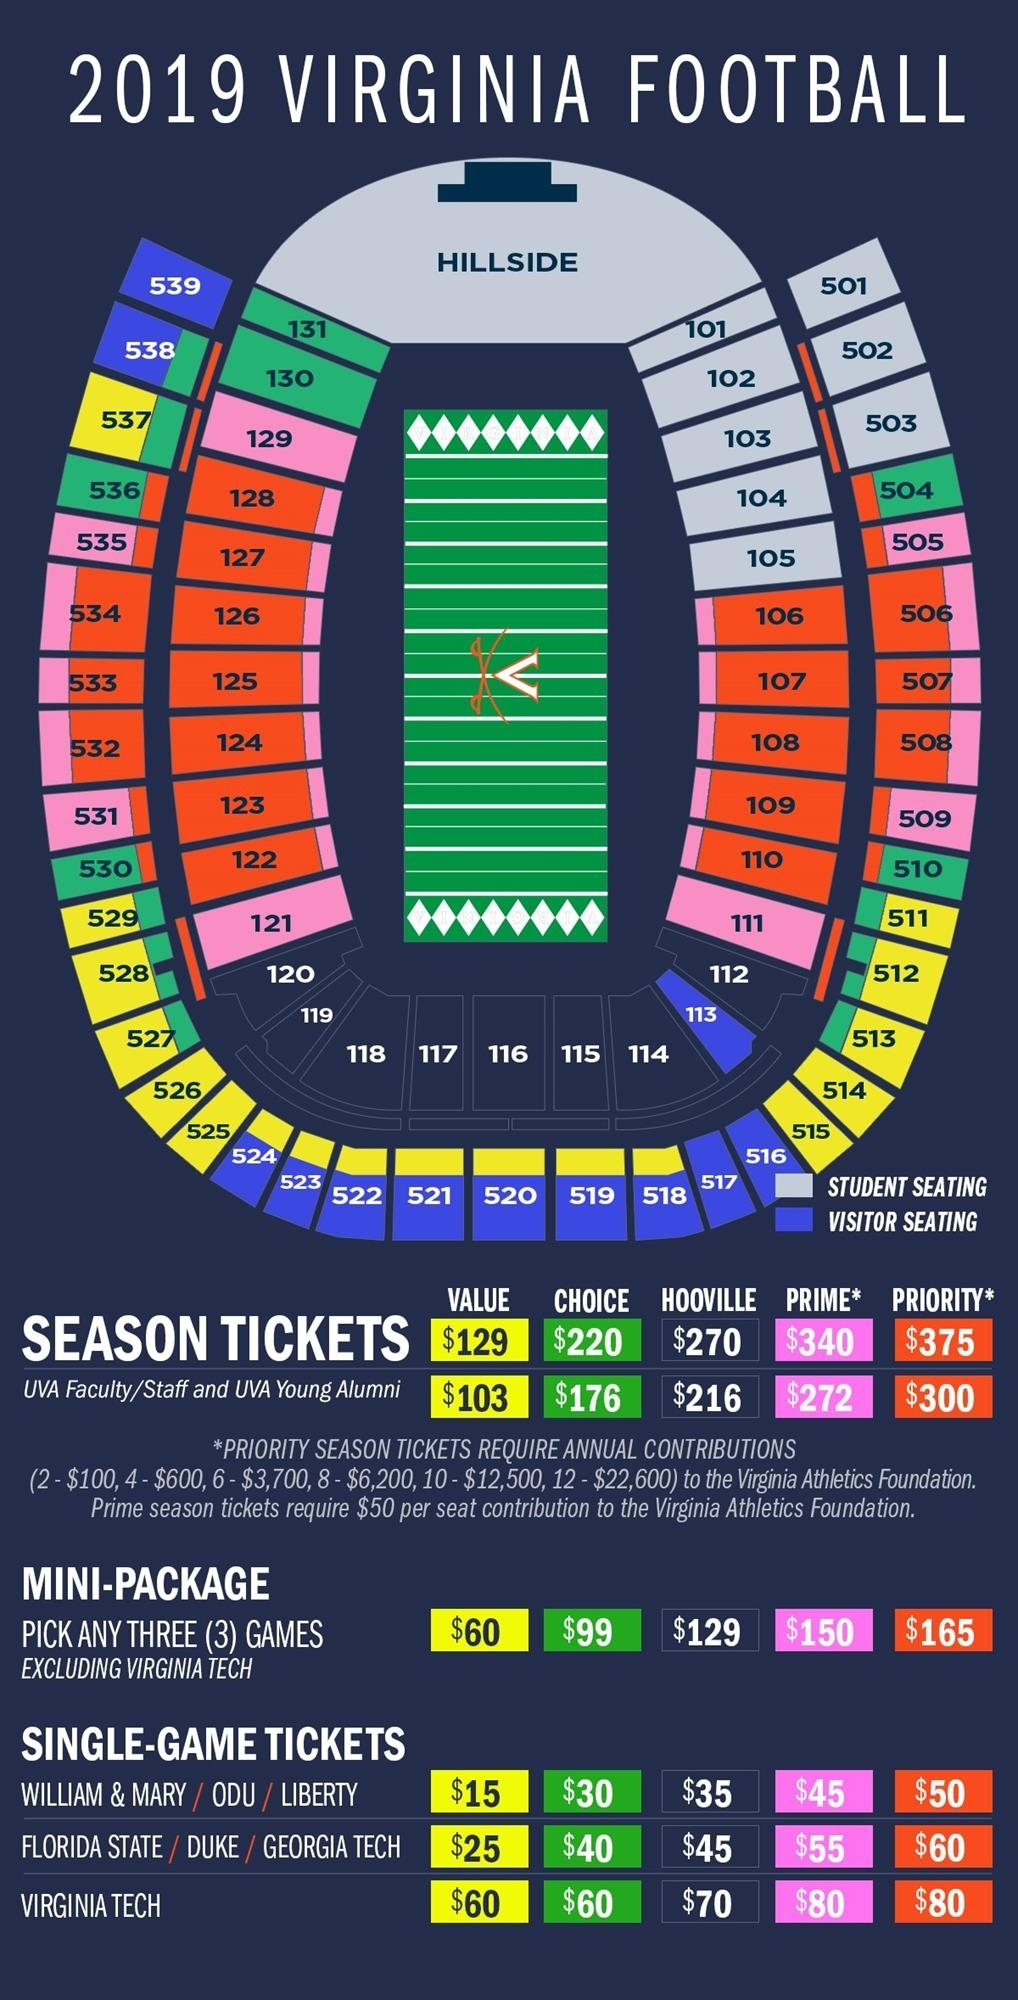 2019 Football Ticket Information - University Of Virginia regarding Super Bowl 2019 Stadium Seating Chart